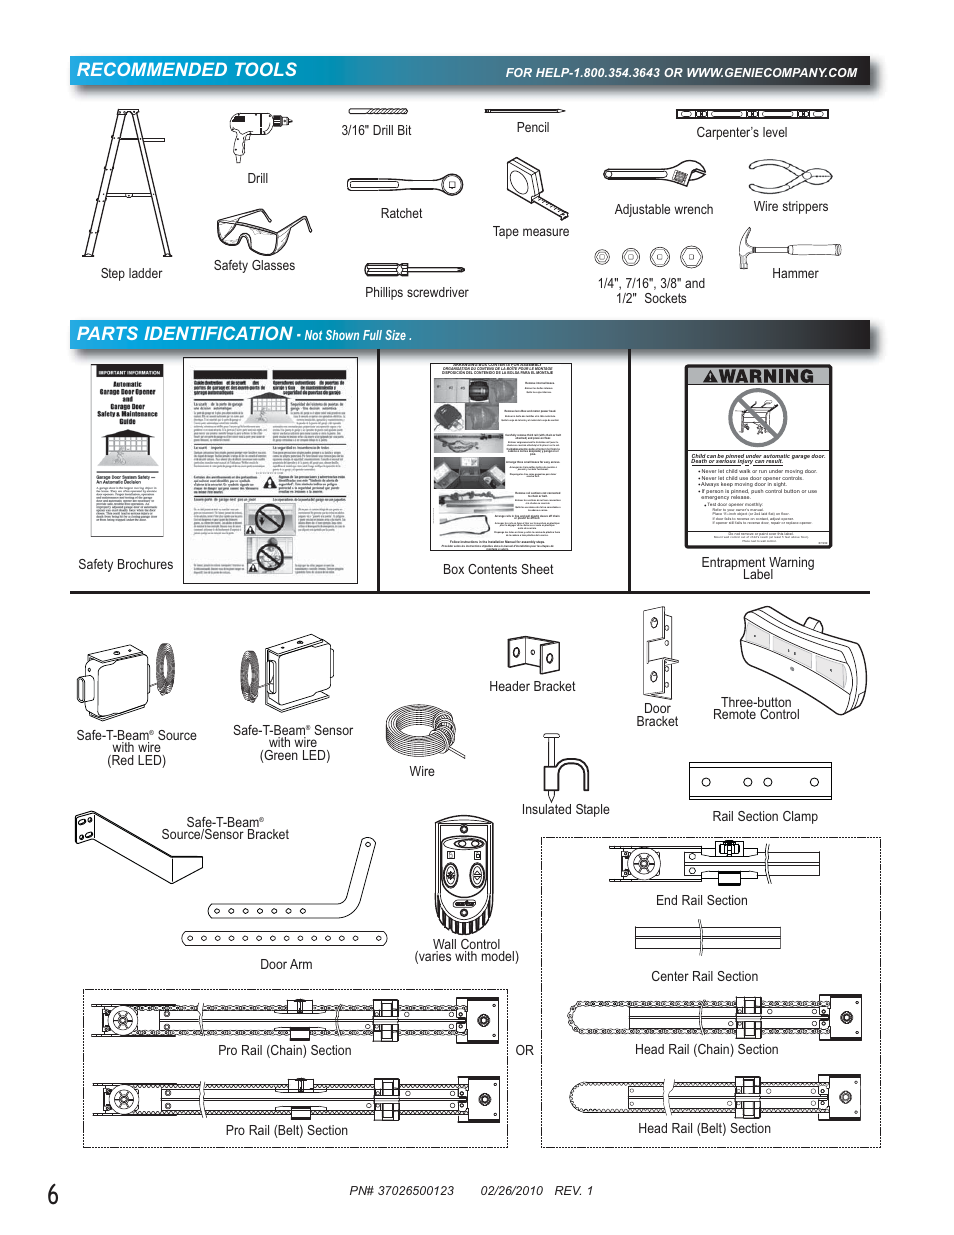 Recommended Tools Parts Identification Not Shown Full